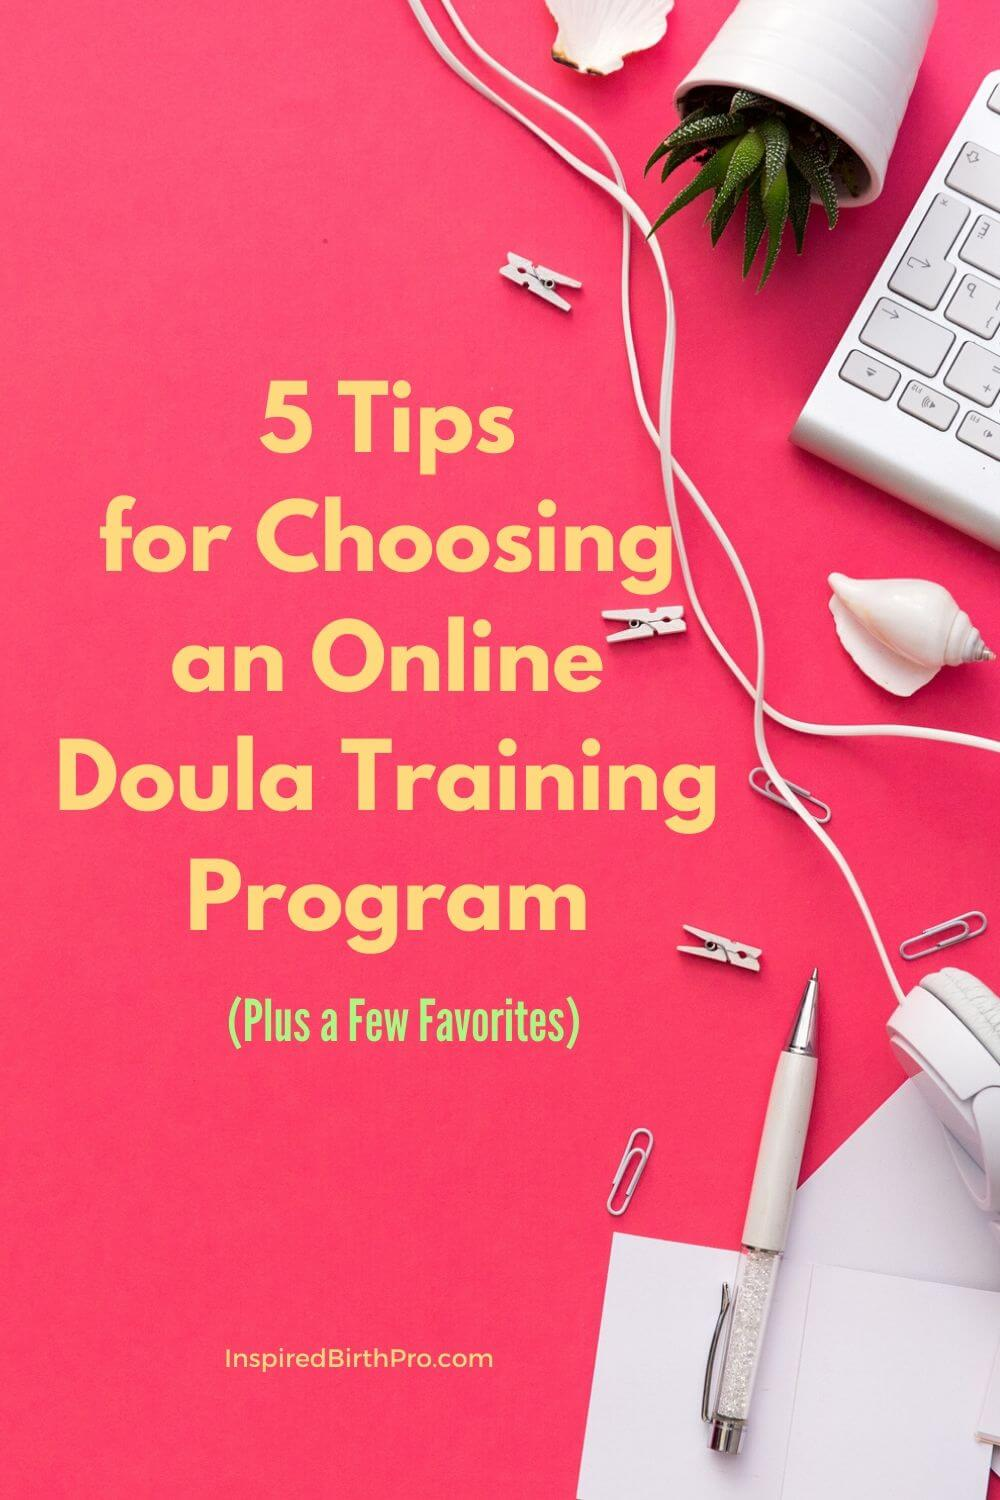 5 Tips for Choosing an Online Doula Training Program (Plus a Few Favorites)